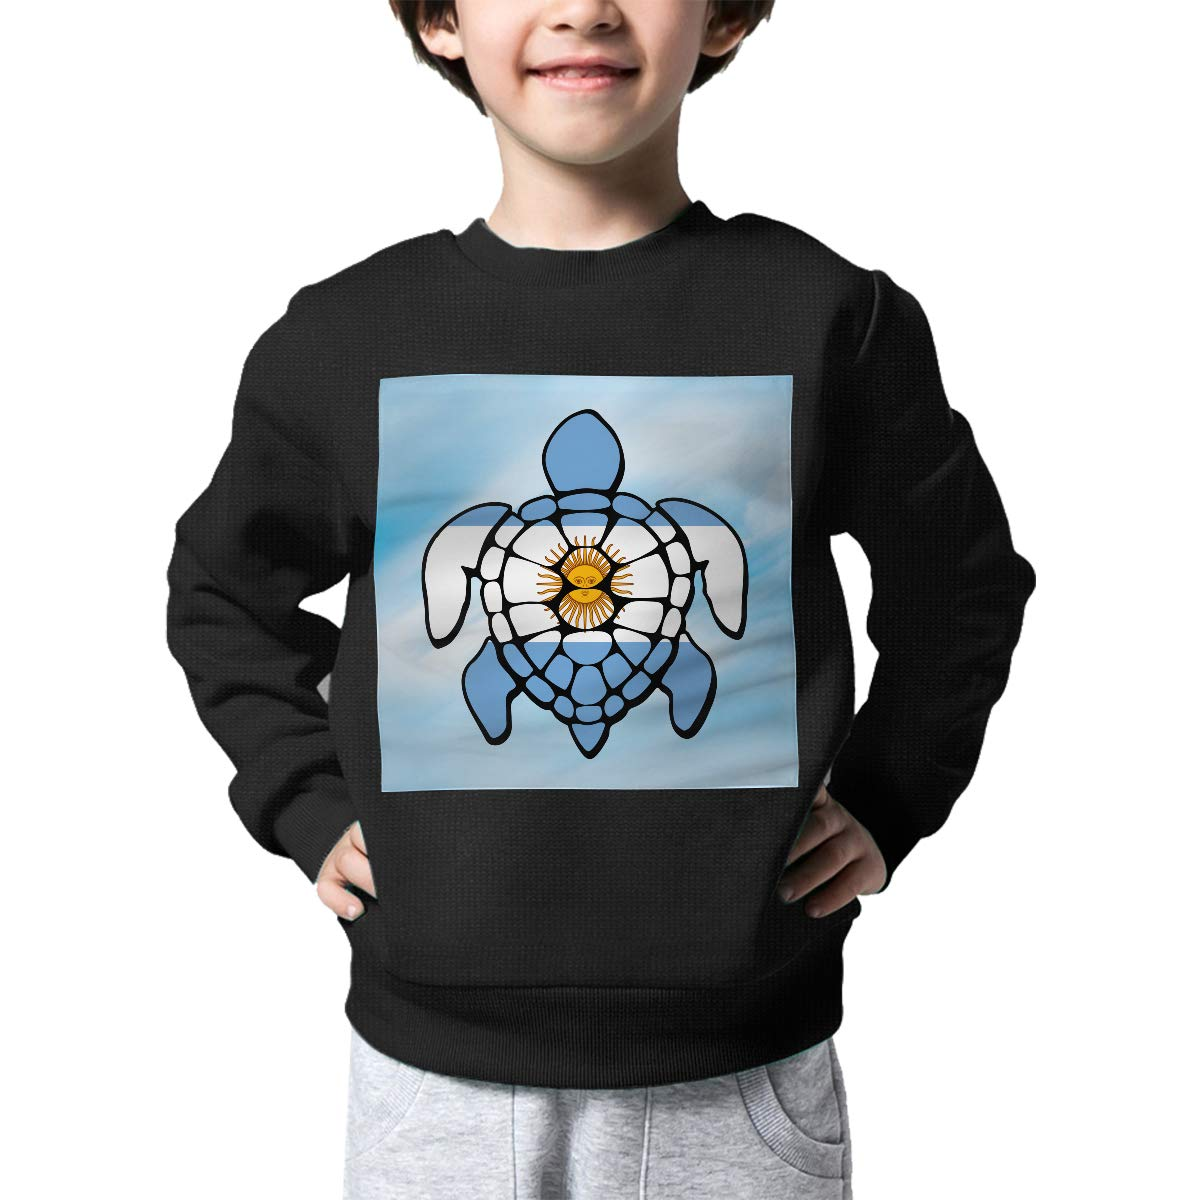 Argentina Flag Turtle Print Baby Girls Kids Crew Neck Sweater Long Sleeve Warm Knitted Sweater Jumper